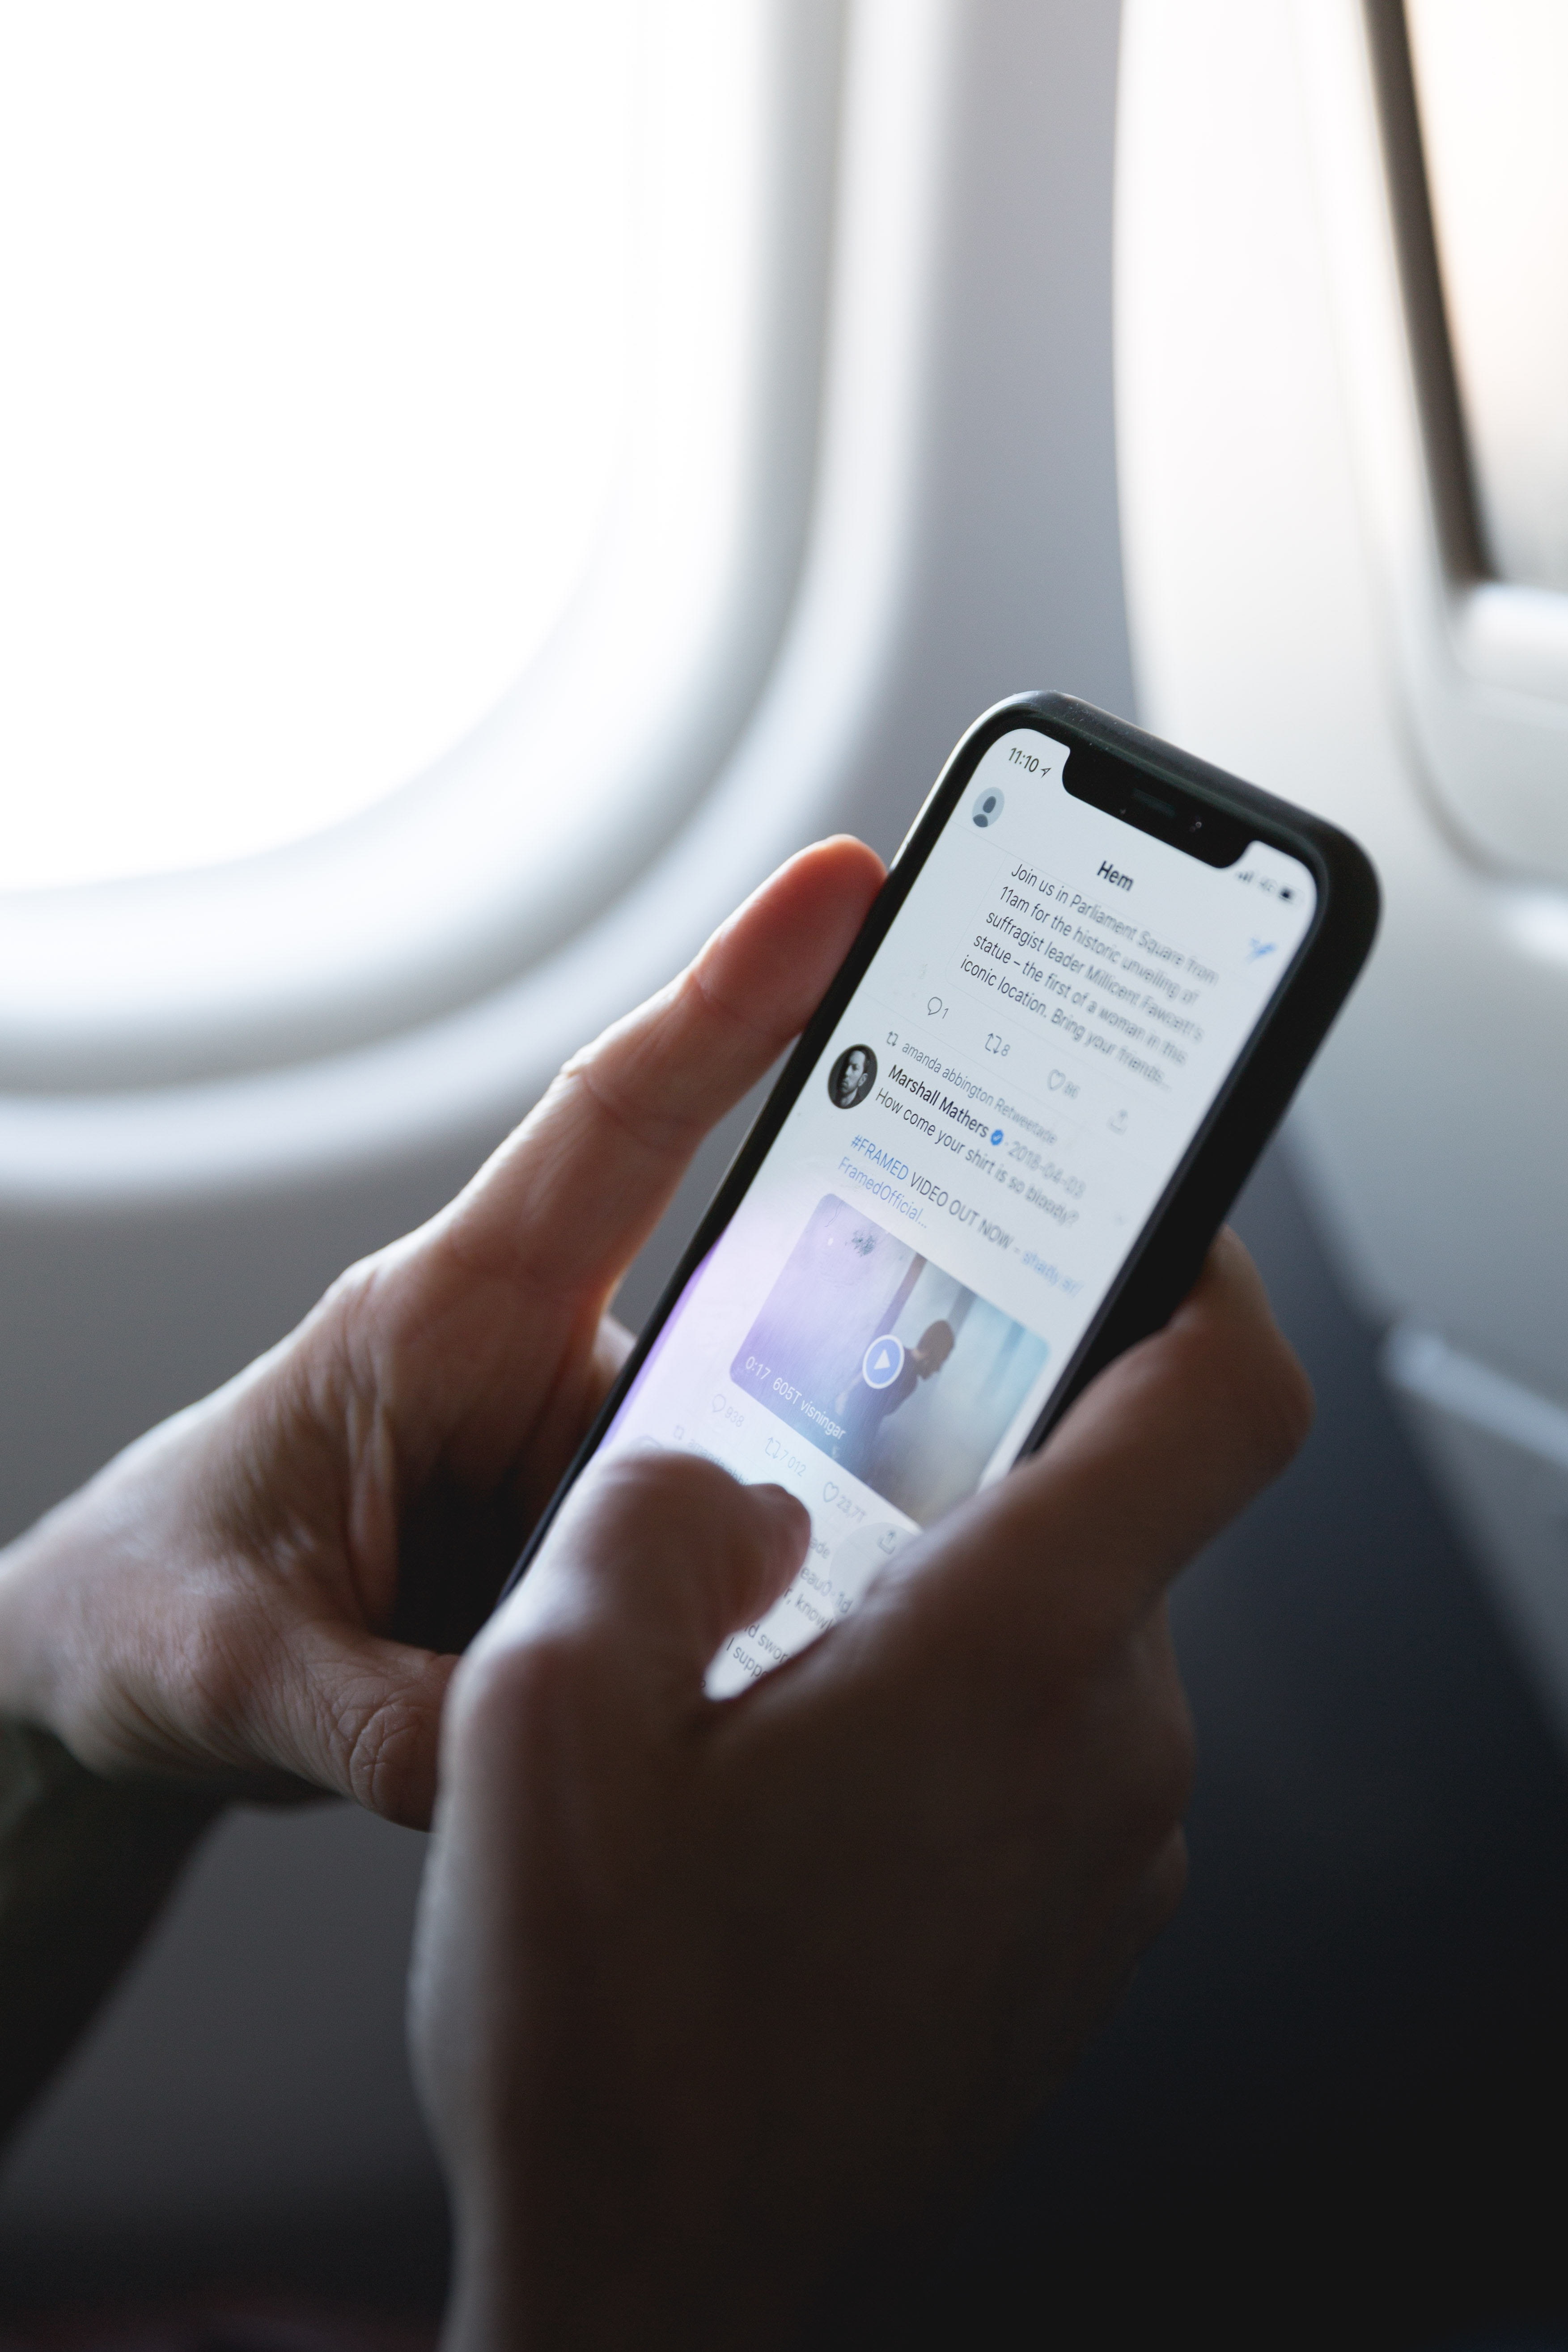 email marketing on a plane